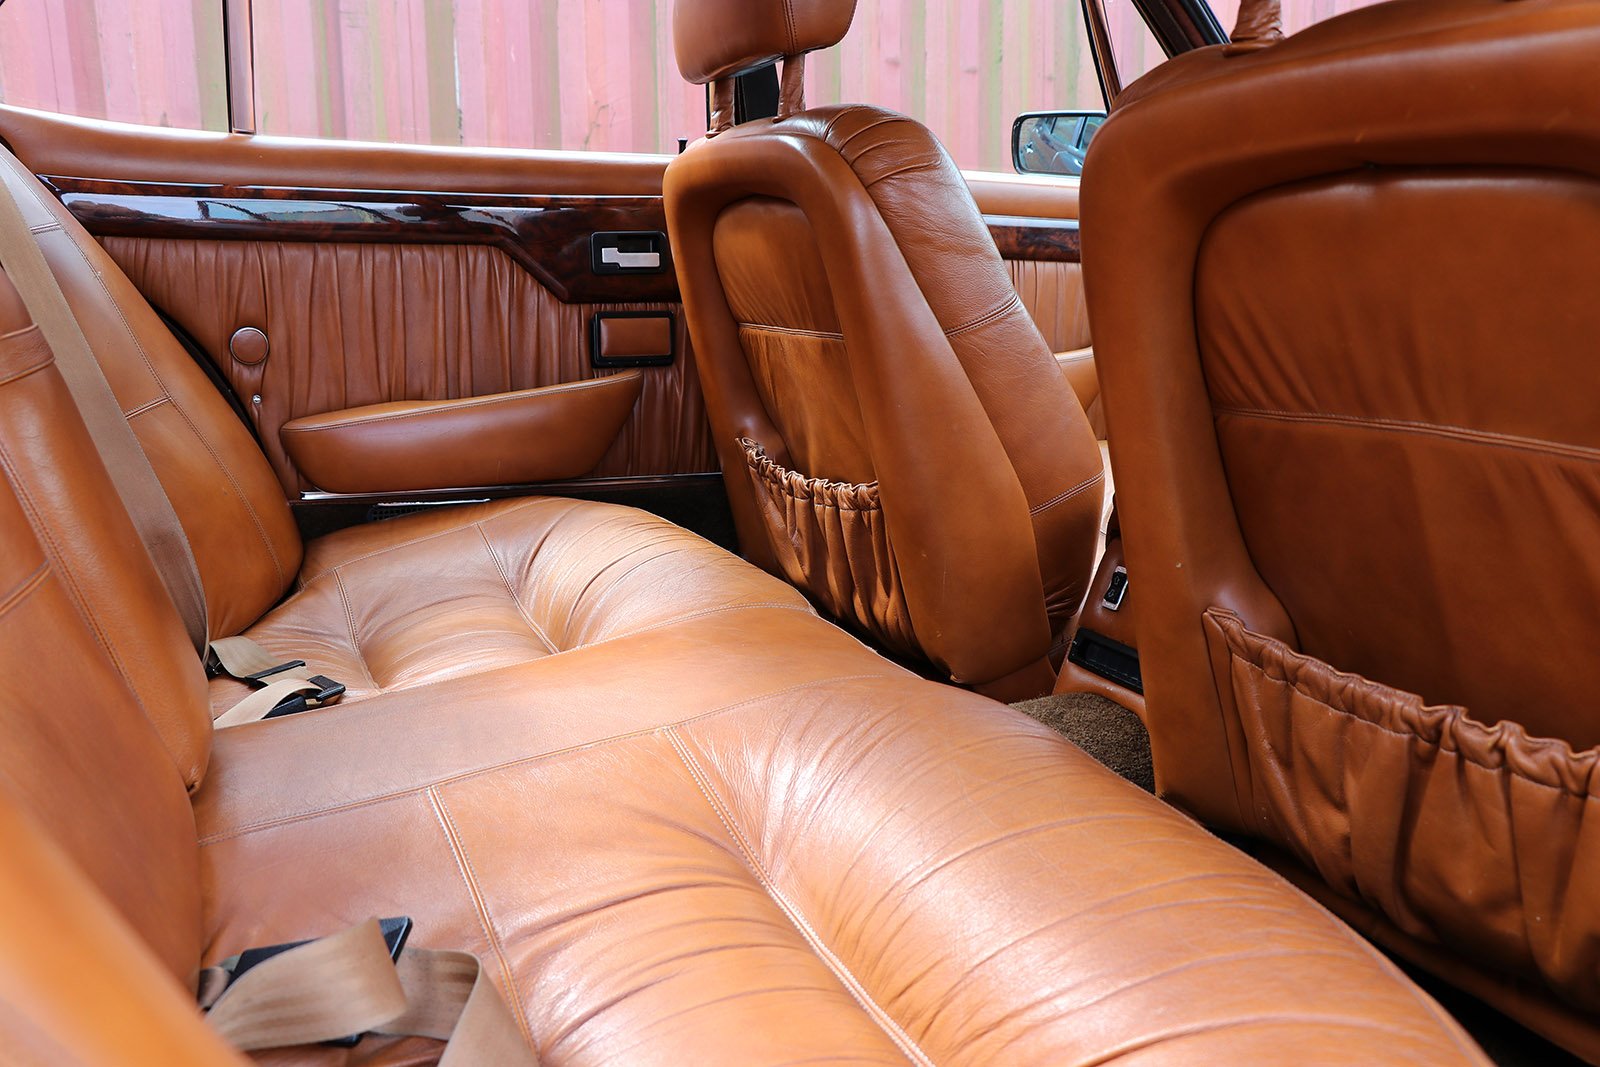 1982 series 2 burgundy deauville interior 8 web.jpg